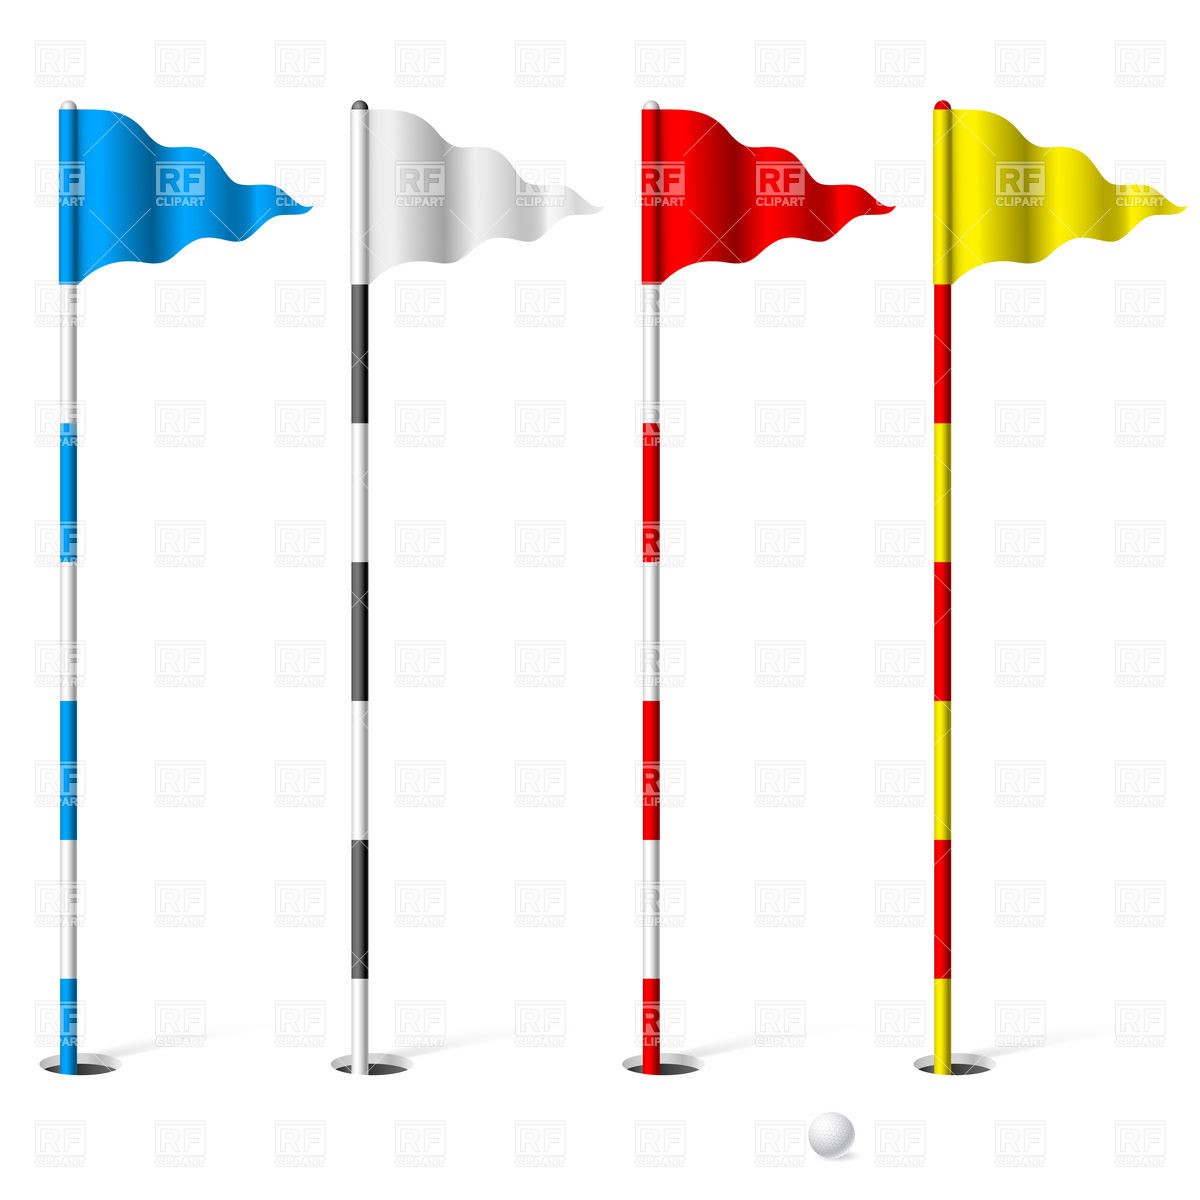 Flags Of The Golf Course 7360 Design Ele-Flags Of The Golf Course 7360 Design Elements Download Royalty Free-3